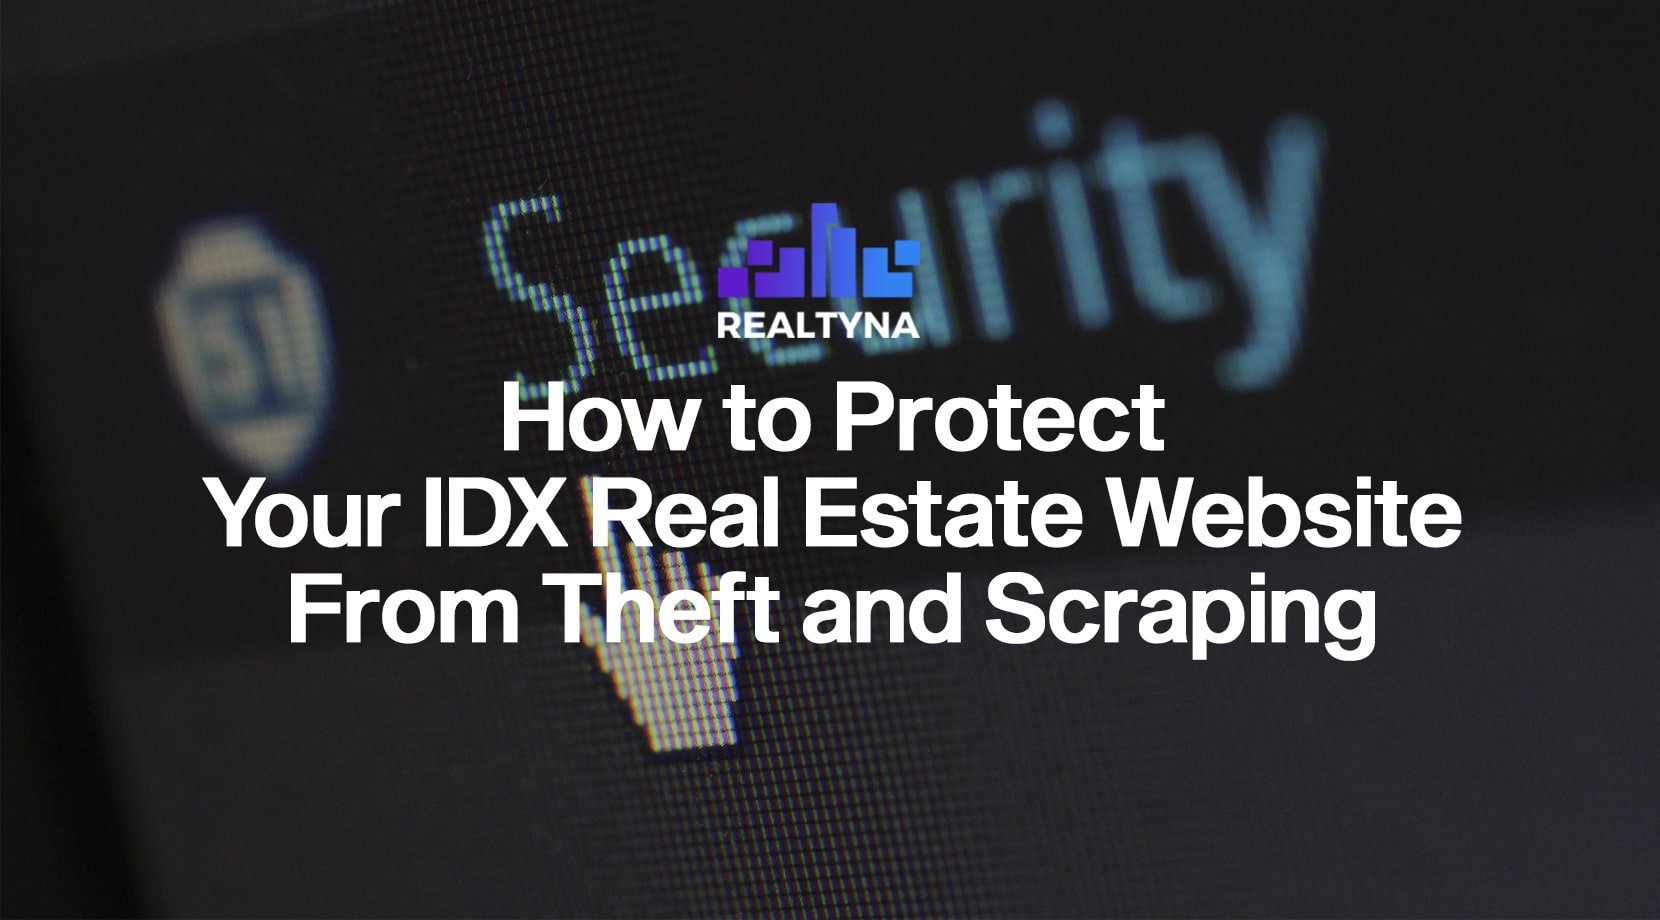 Protect Your IDX Real Estate Website